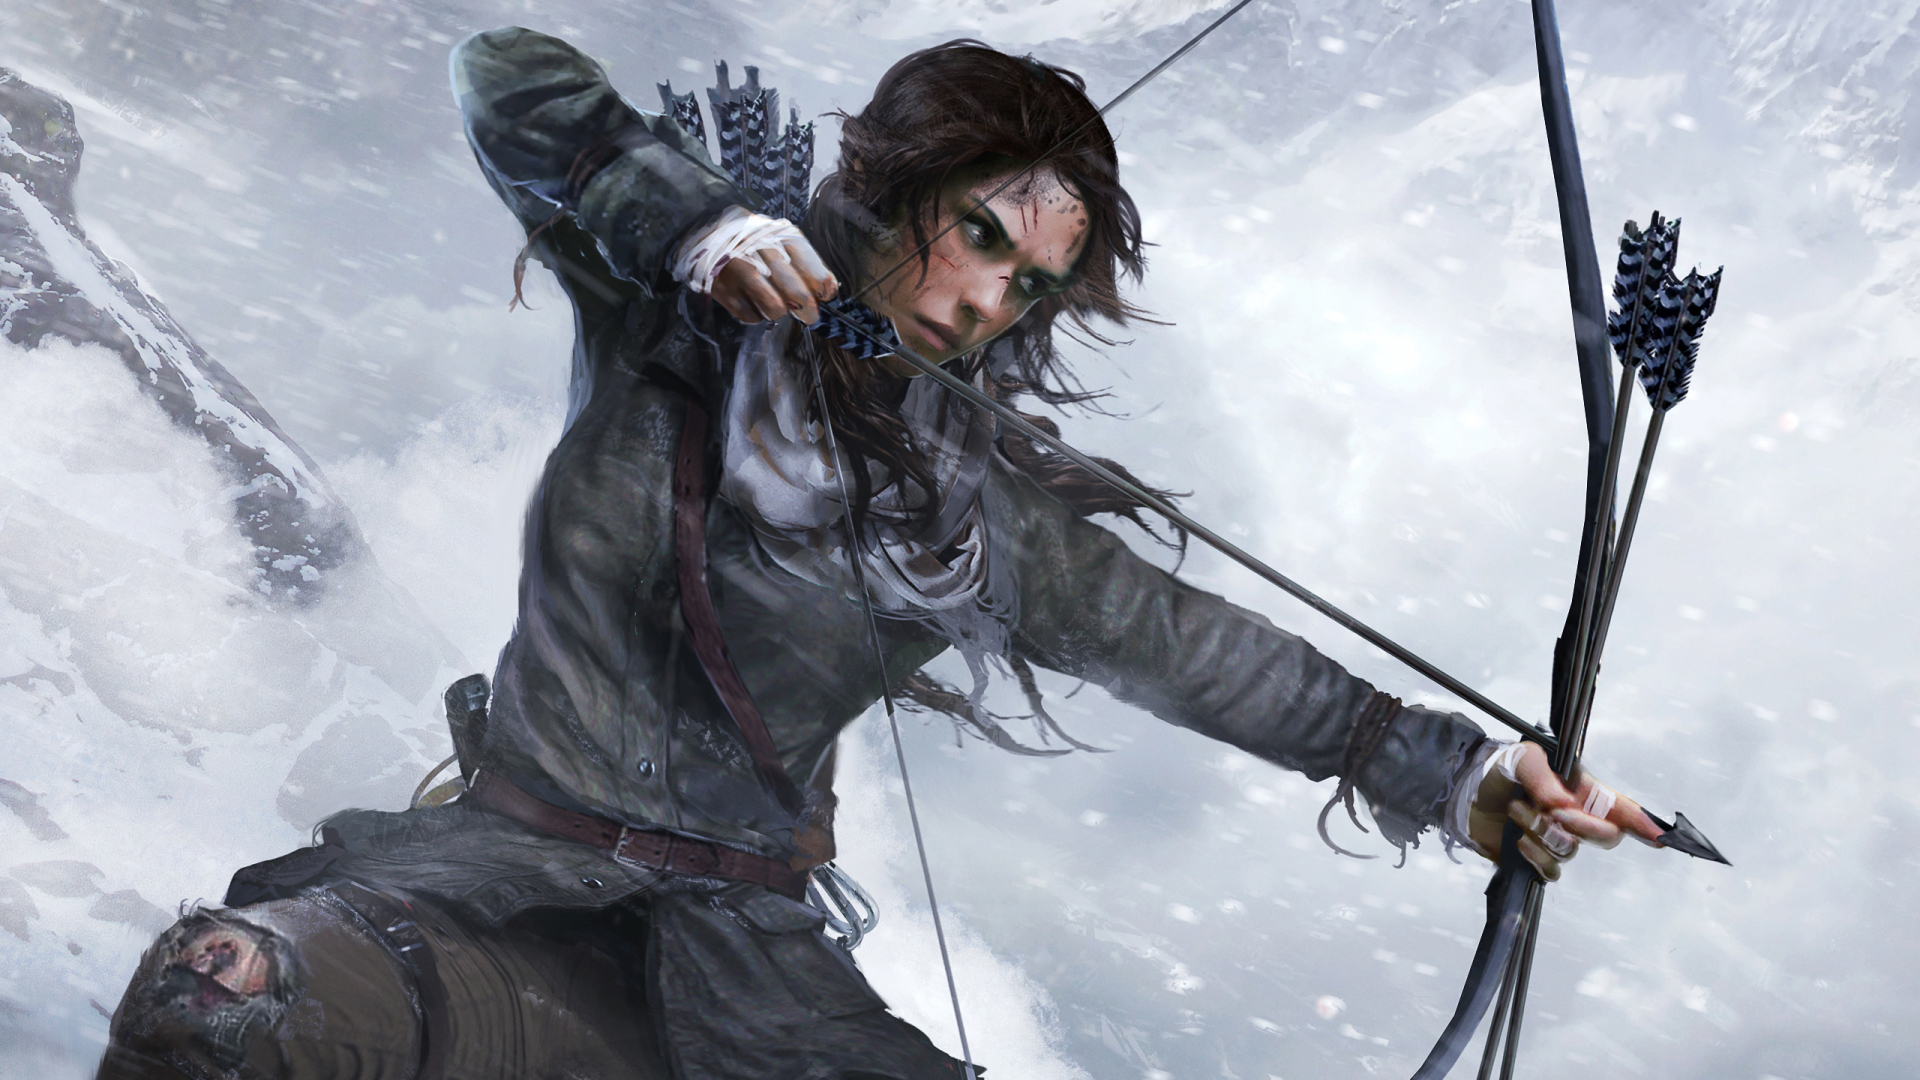 1920x1080 Rise Of The Tomb Raider Lara Croft 1080p Laptop Full